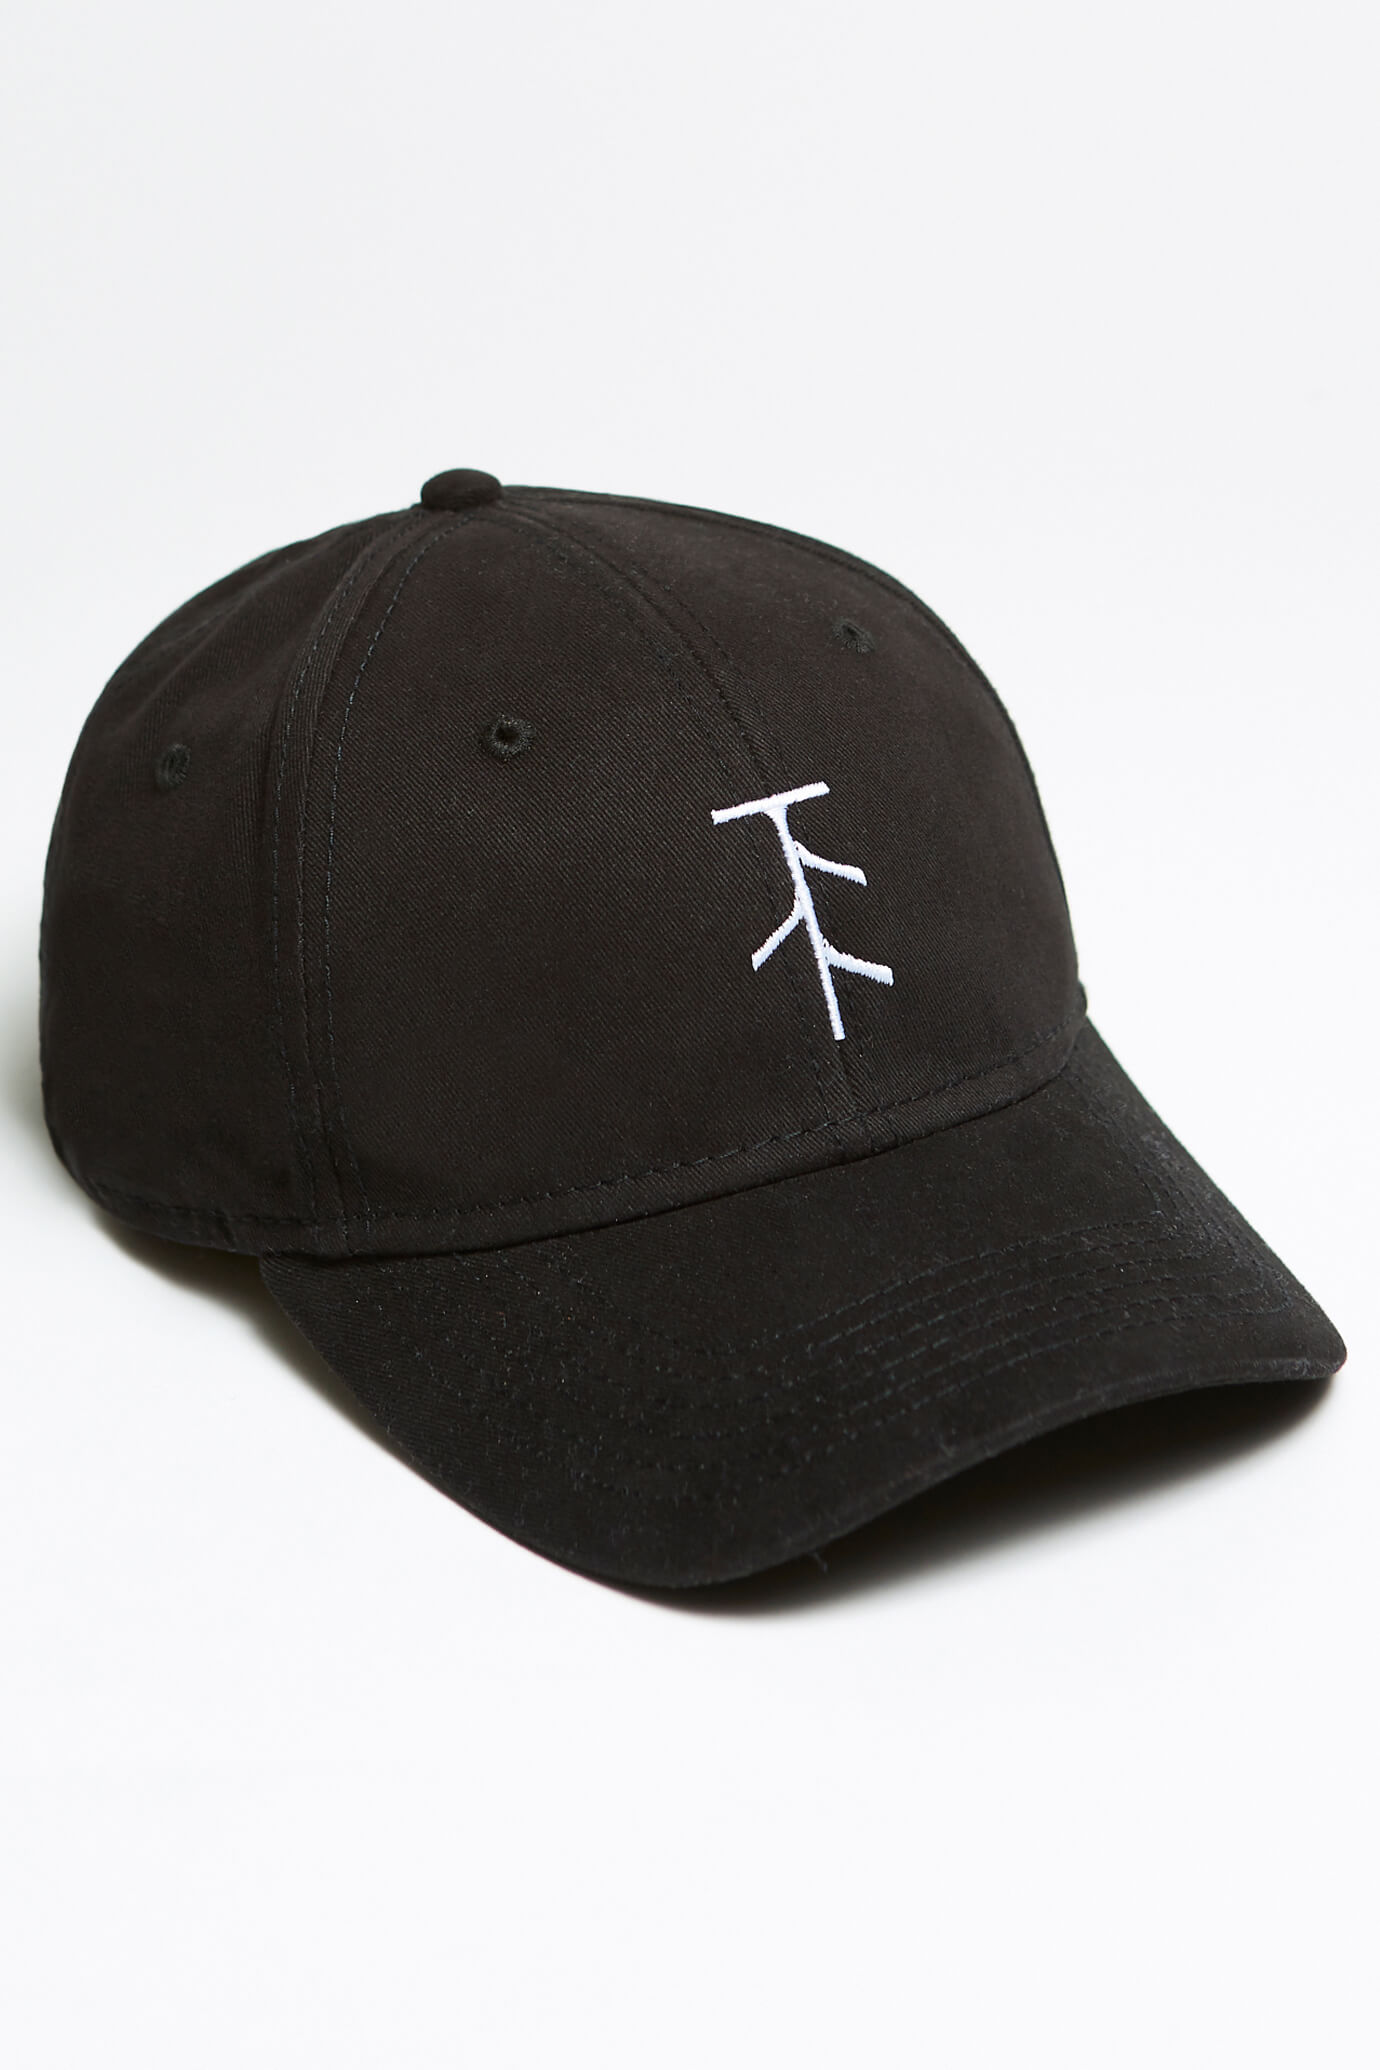 taproot pictures hat in black with rooty